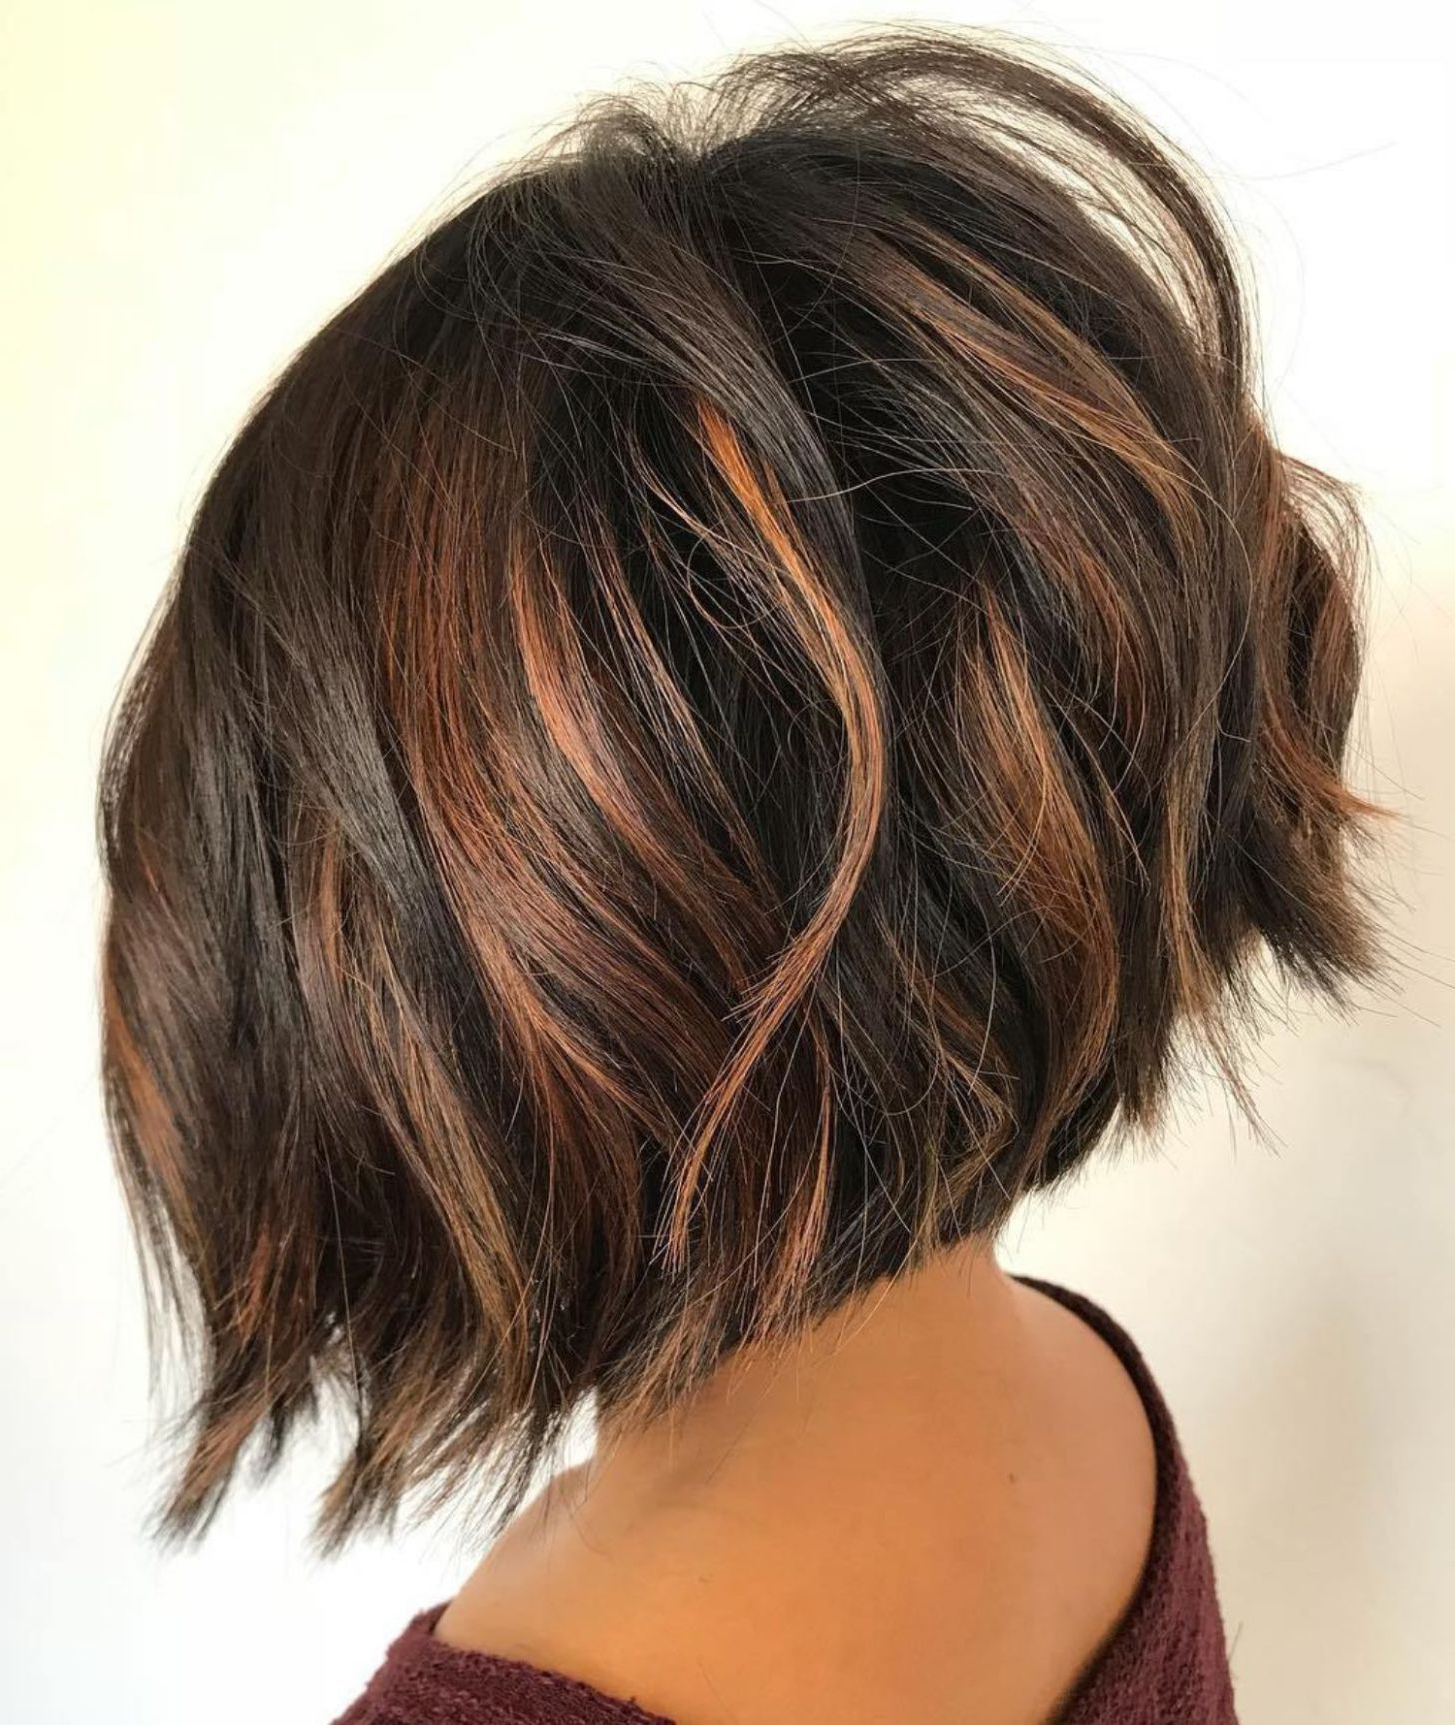 60 Most Beneficial Haircuts For Thick Hair Of Any Length In 2018 With Regard To Angled Bob Hairstyles For Thick Tresses (View 1 of 20)